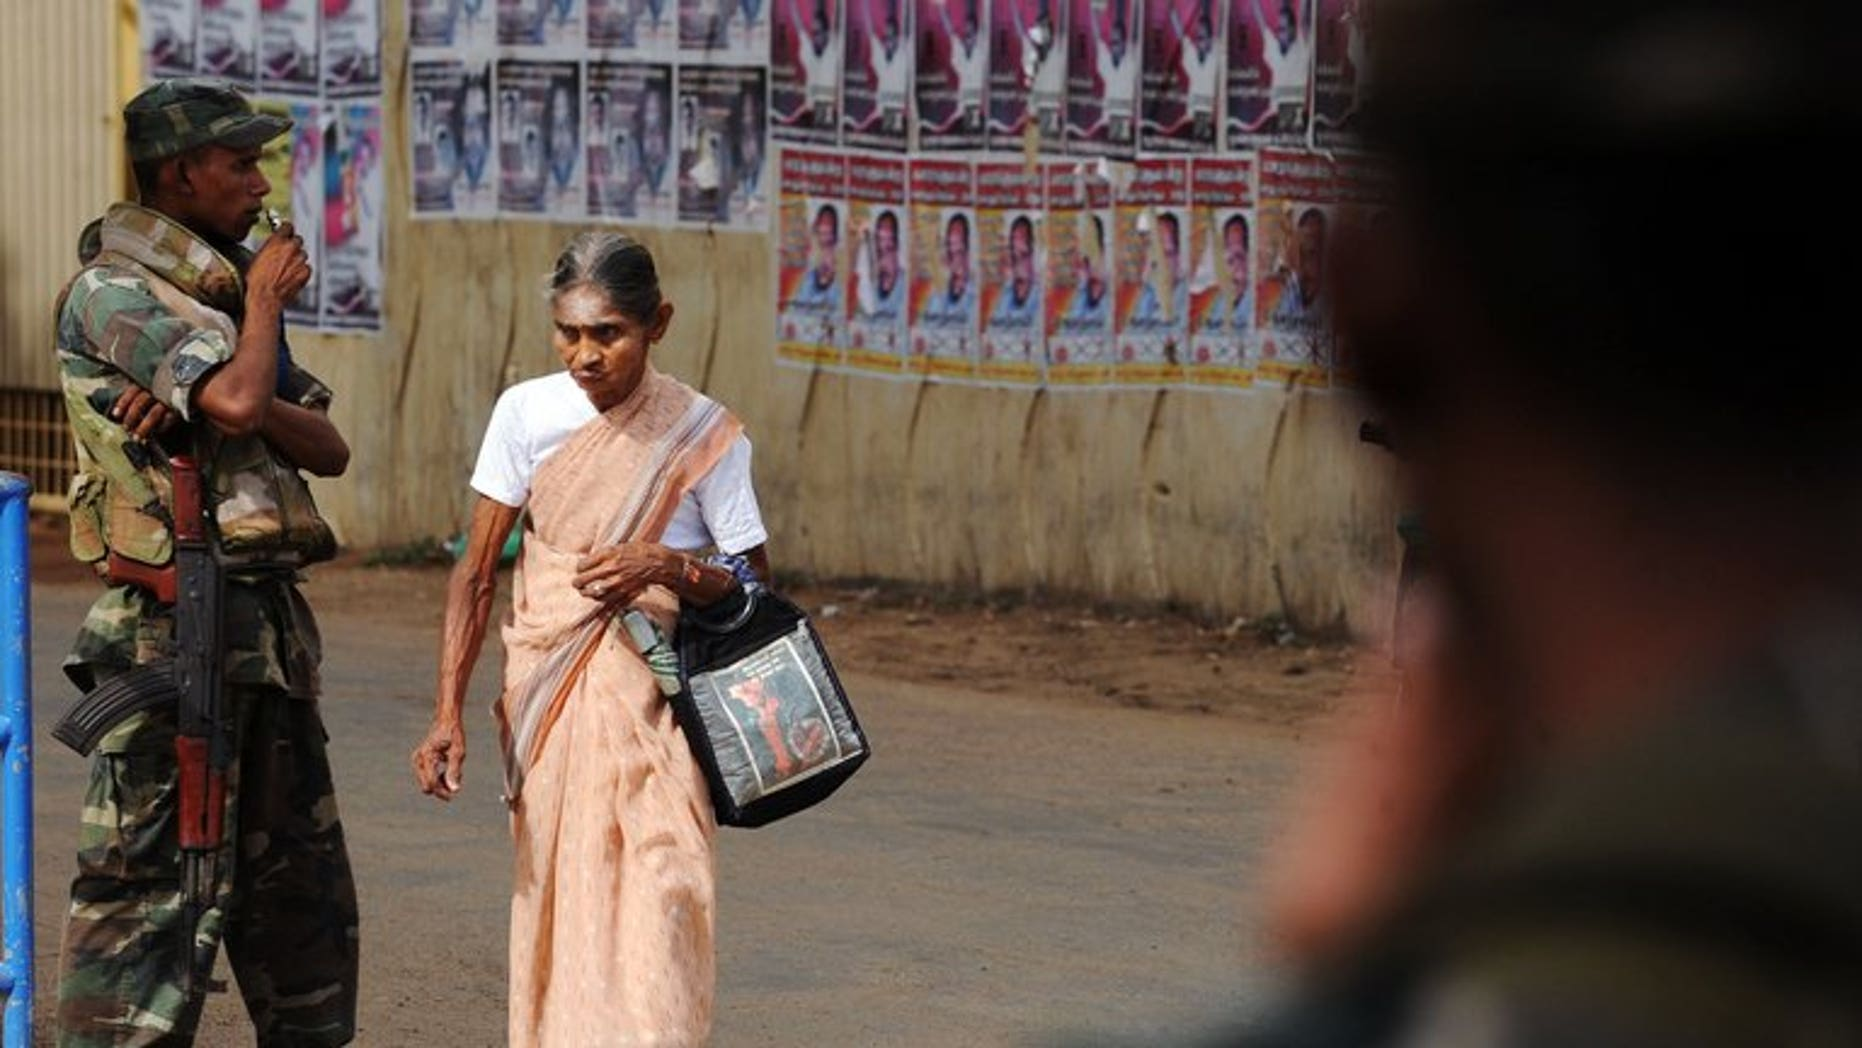 An elderly Sri Lanka woman walks past armed soldiers in the northern town of Jaffna on April 30, 2010. Sri Lanka's main Tamil party Tuesday demanded troops be confined to barracks after accusing them of campaigning for the ruling party at key elections in the former separatist stronghold of Jaffna.